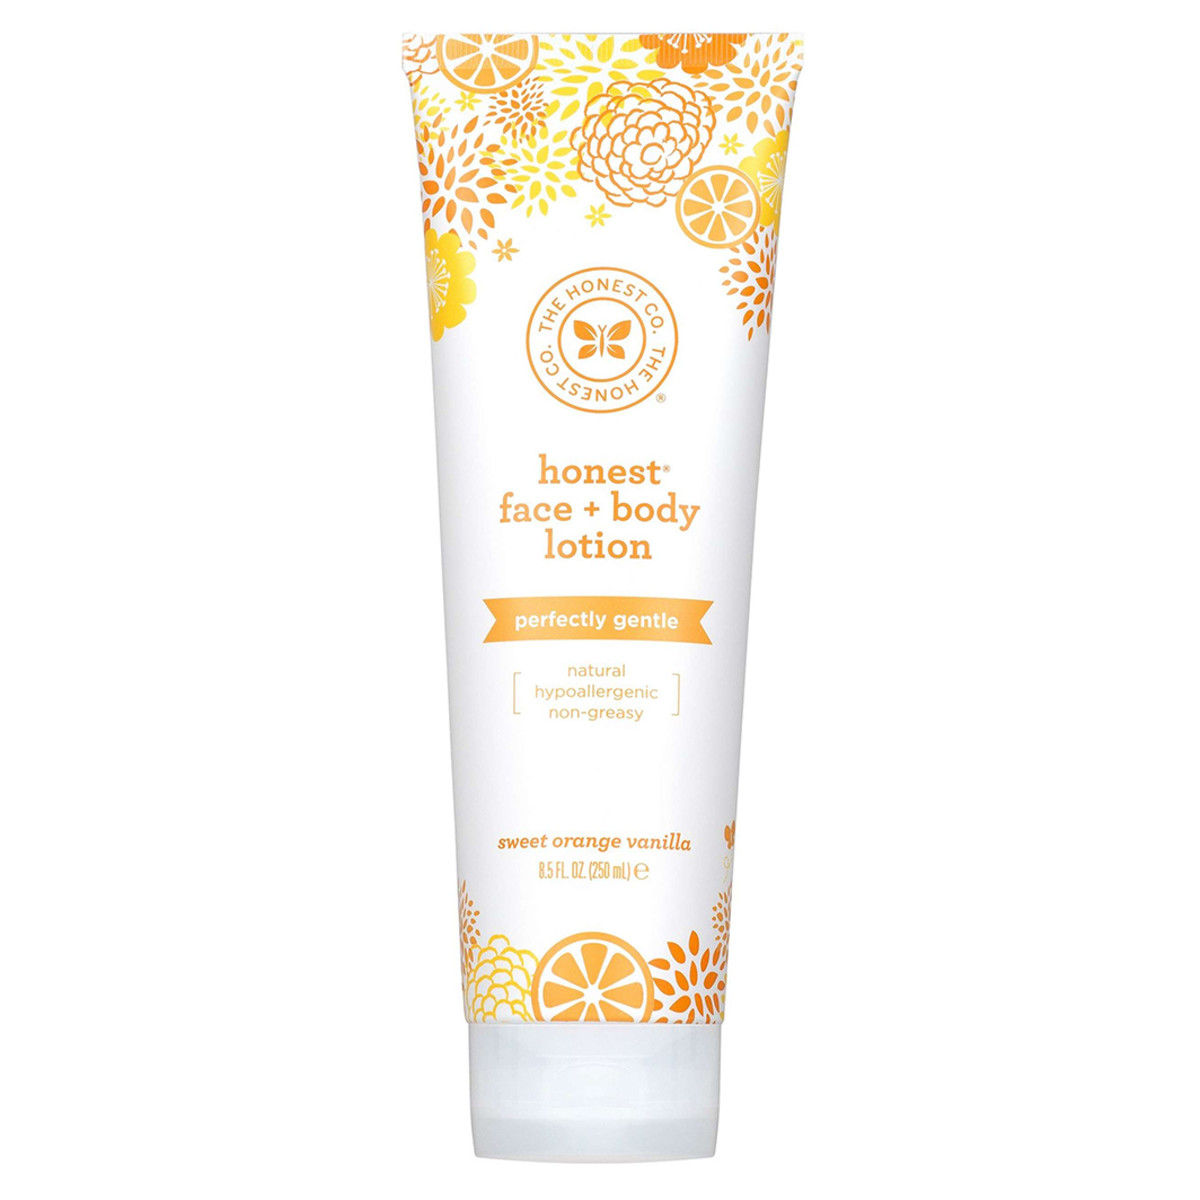 The Honest Company Honest Face and Body Lotion